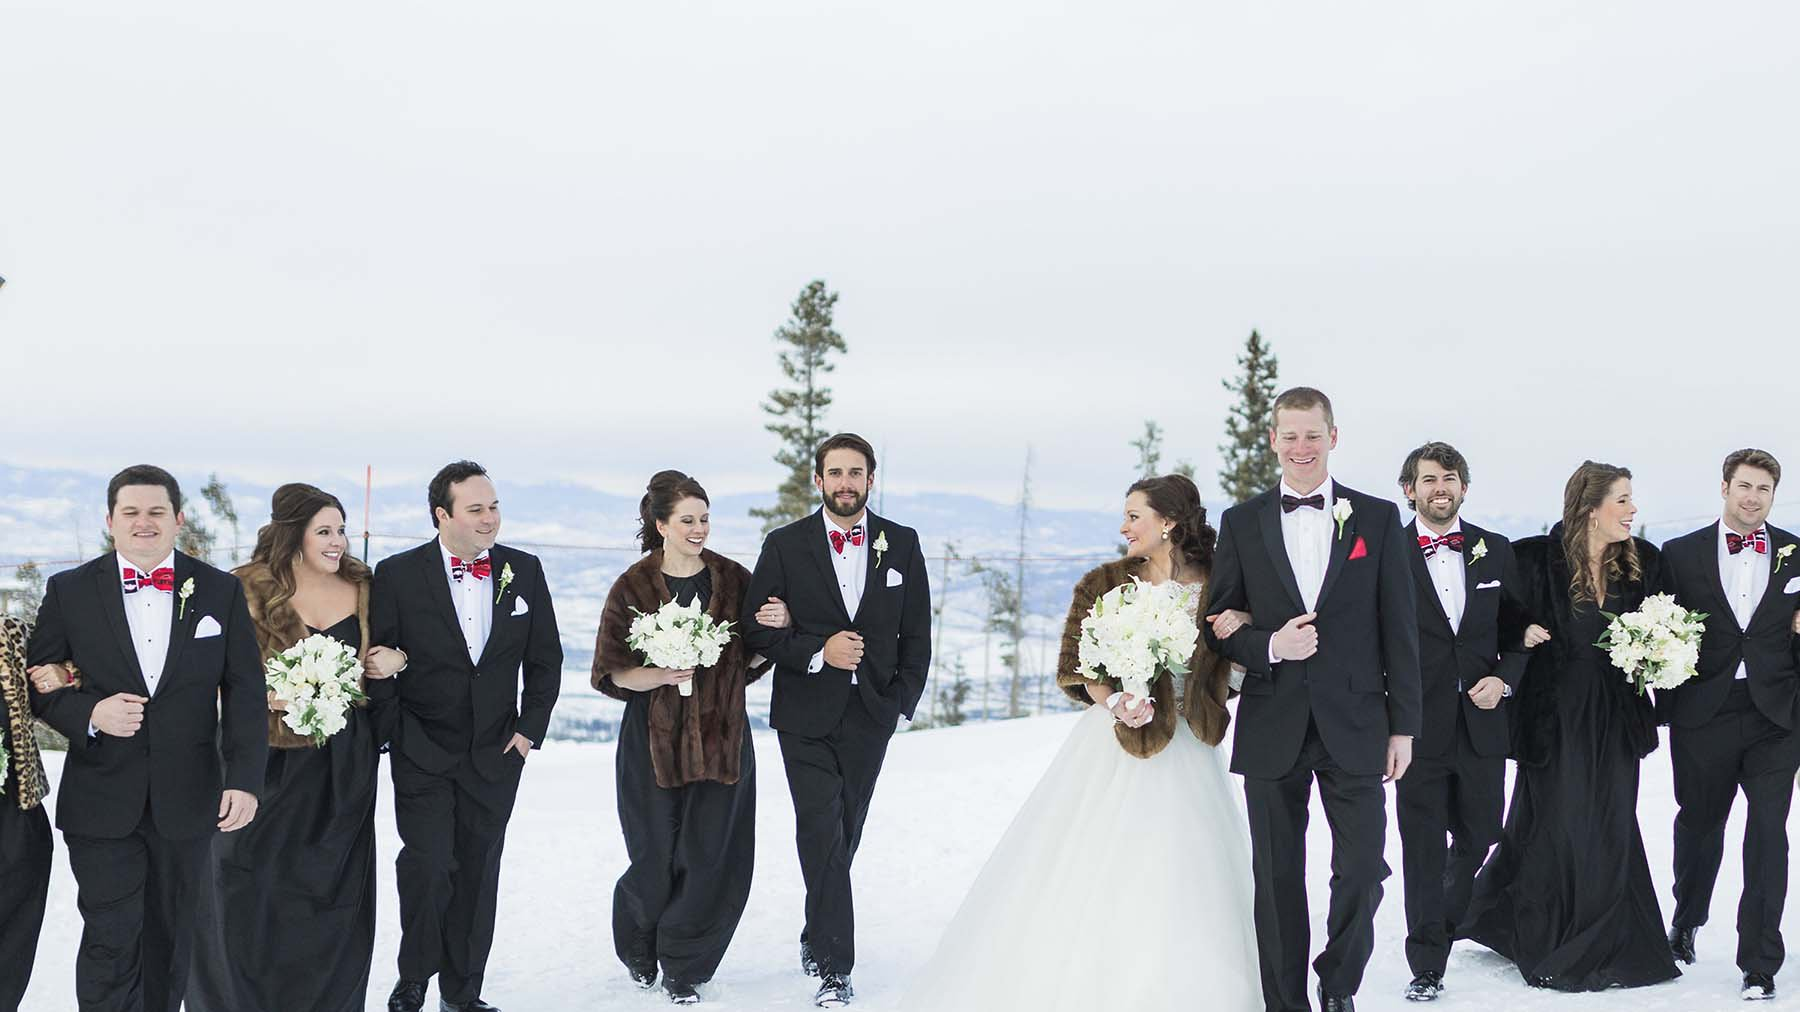 Winter park resort weddings winter park colorado start planning today lr wedding junglespirit Image collections